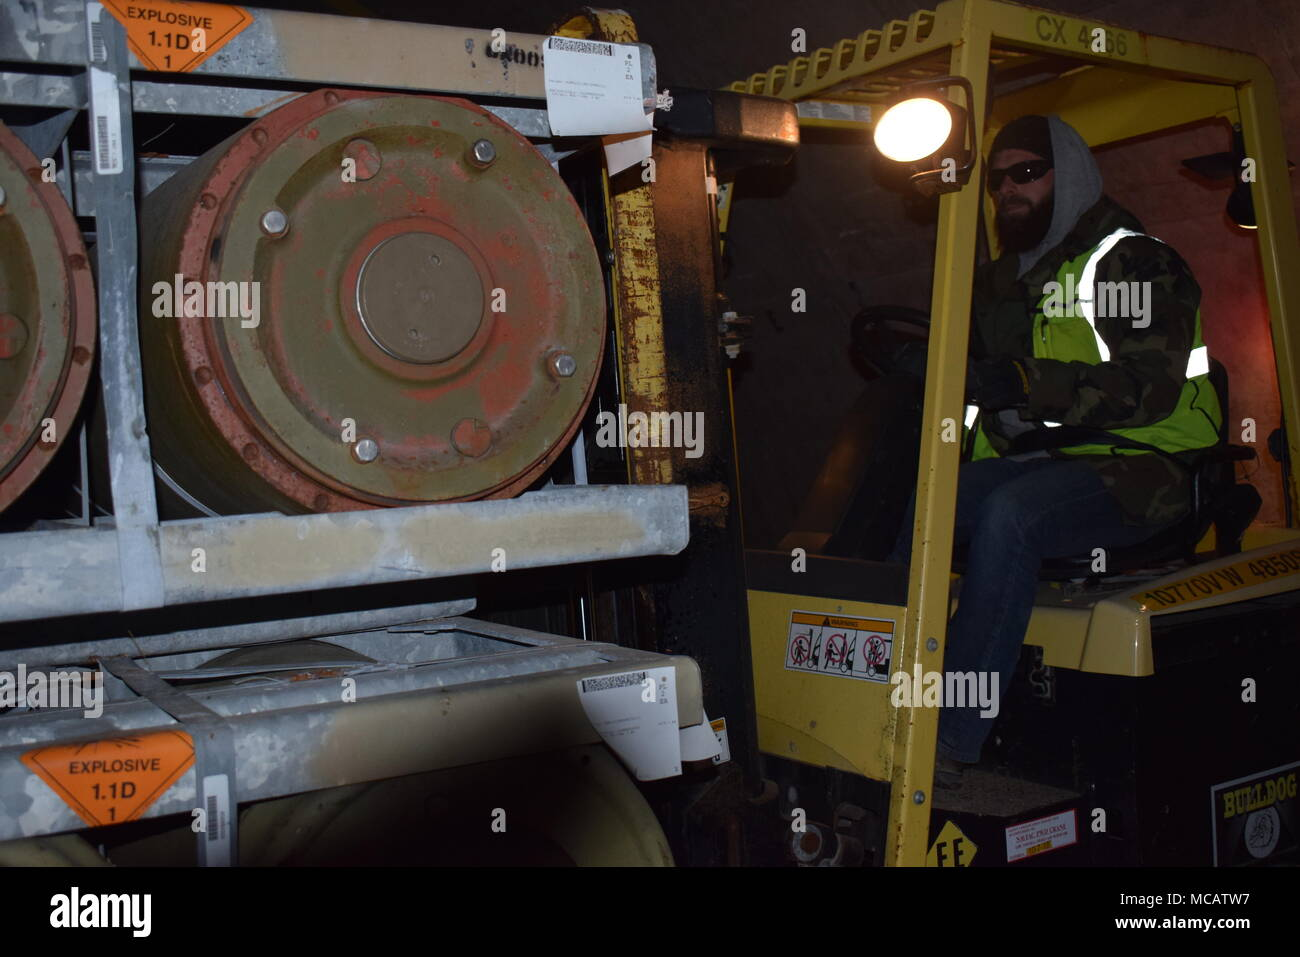 2000 Lb Stock Photos & 2000 Lb Stock Images - Alamy